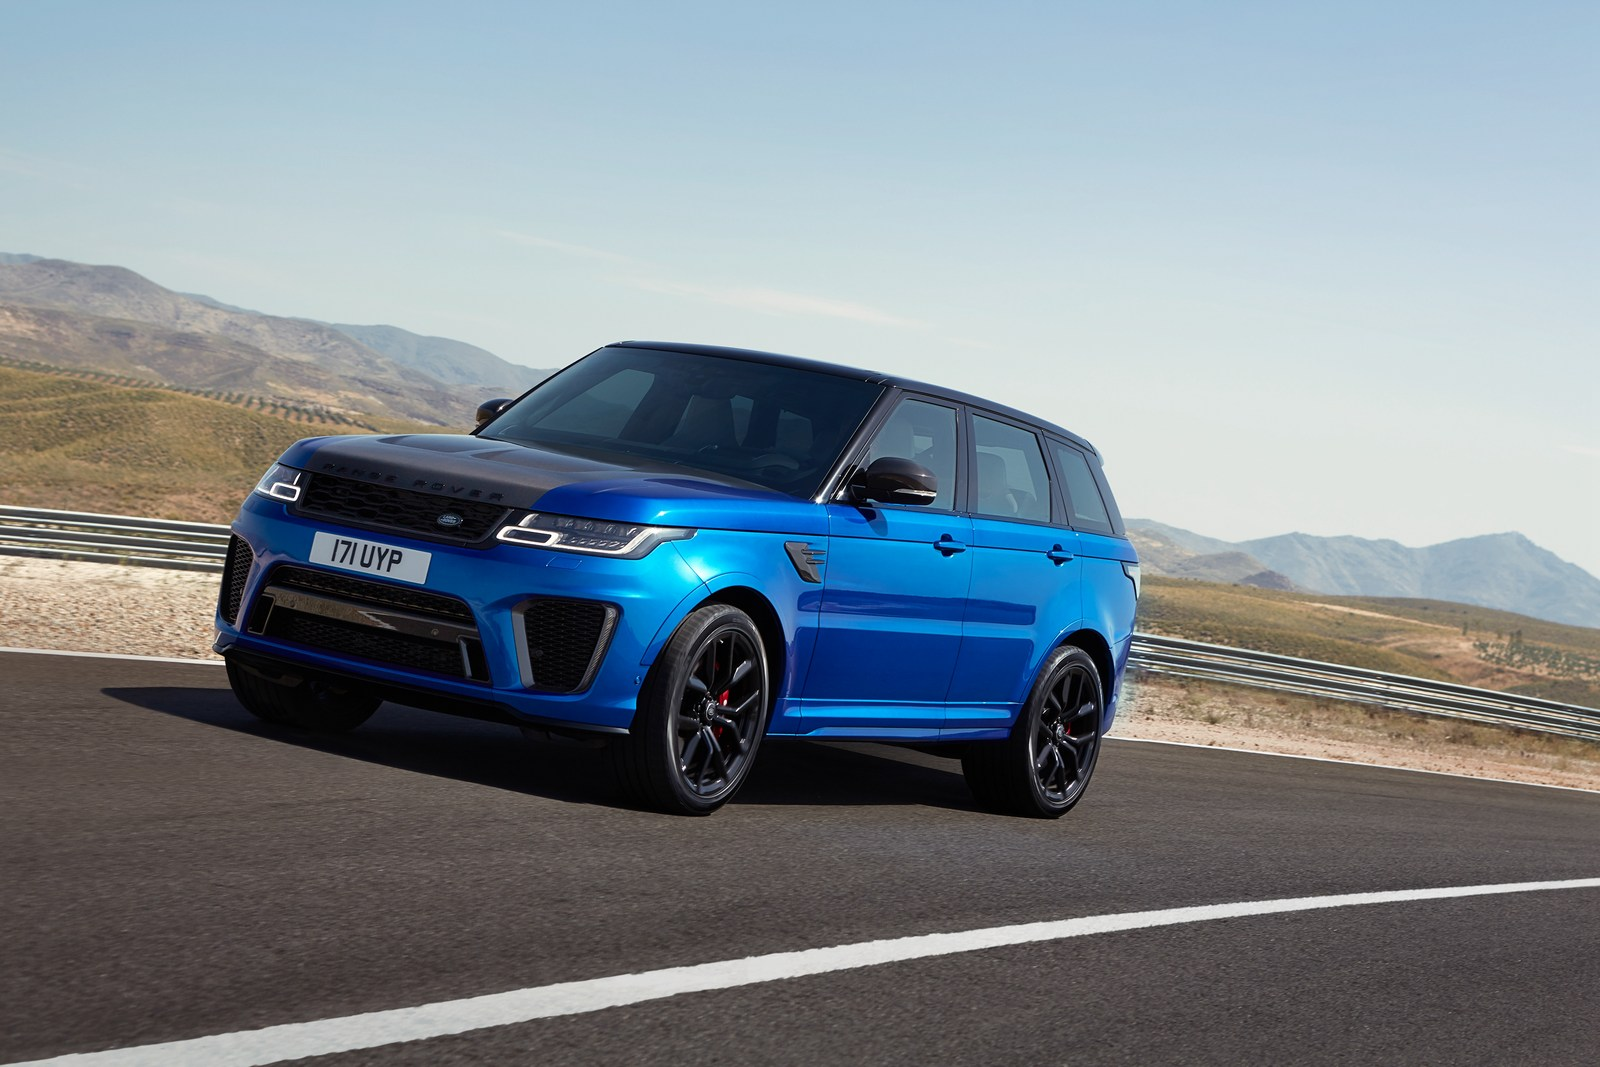 Discovery Sport 2018 Changes >> 2018 Range Rover Sport SVR Facelift Has Carbon Hood - autoevolution